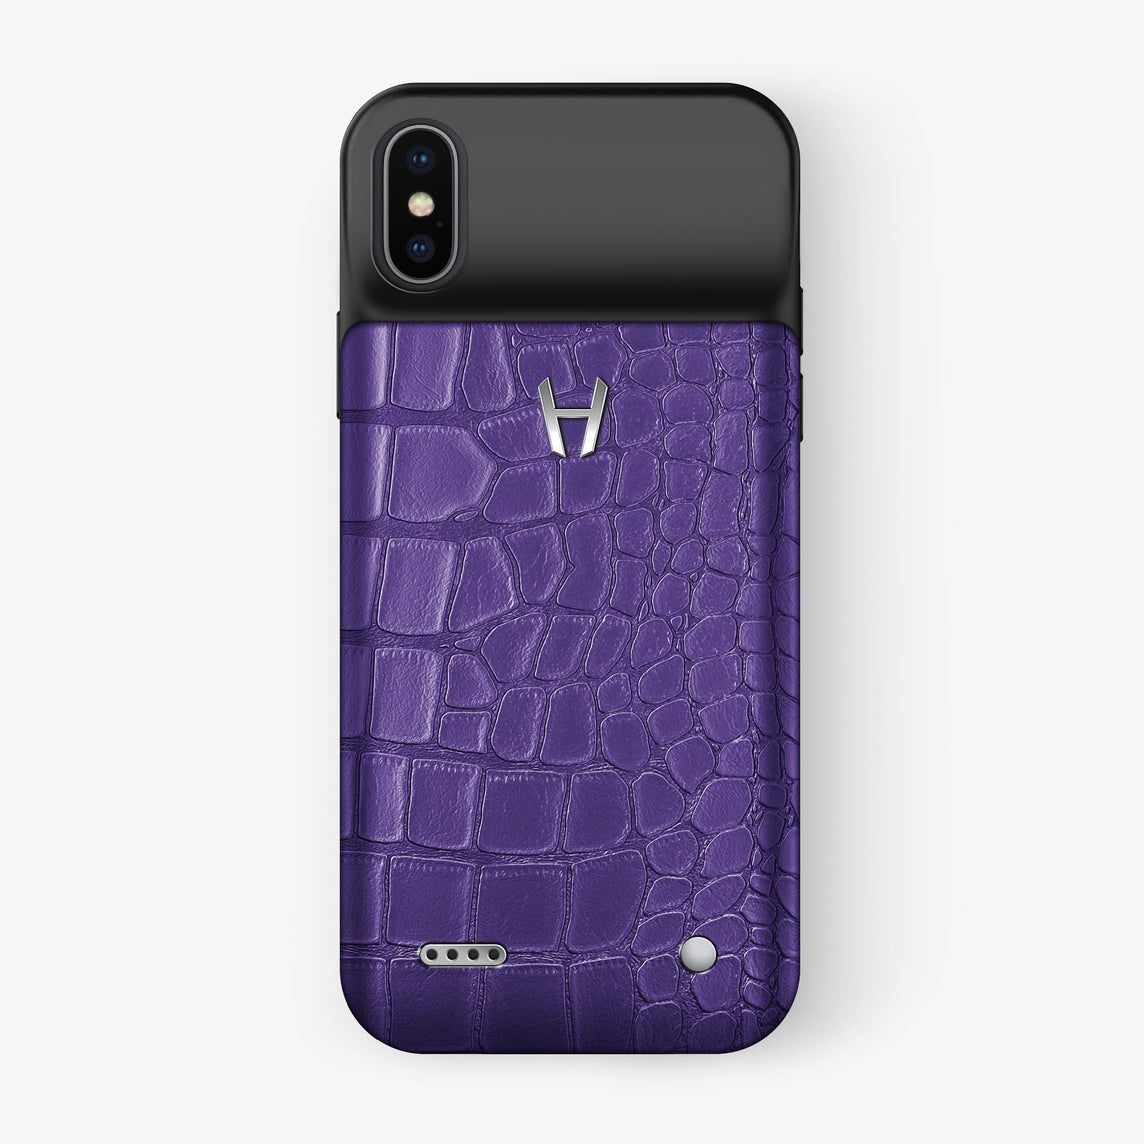 Alligator Battery Case iPhone Xs Max | Purple - Stainless Steel without-personalization